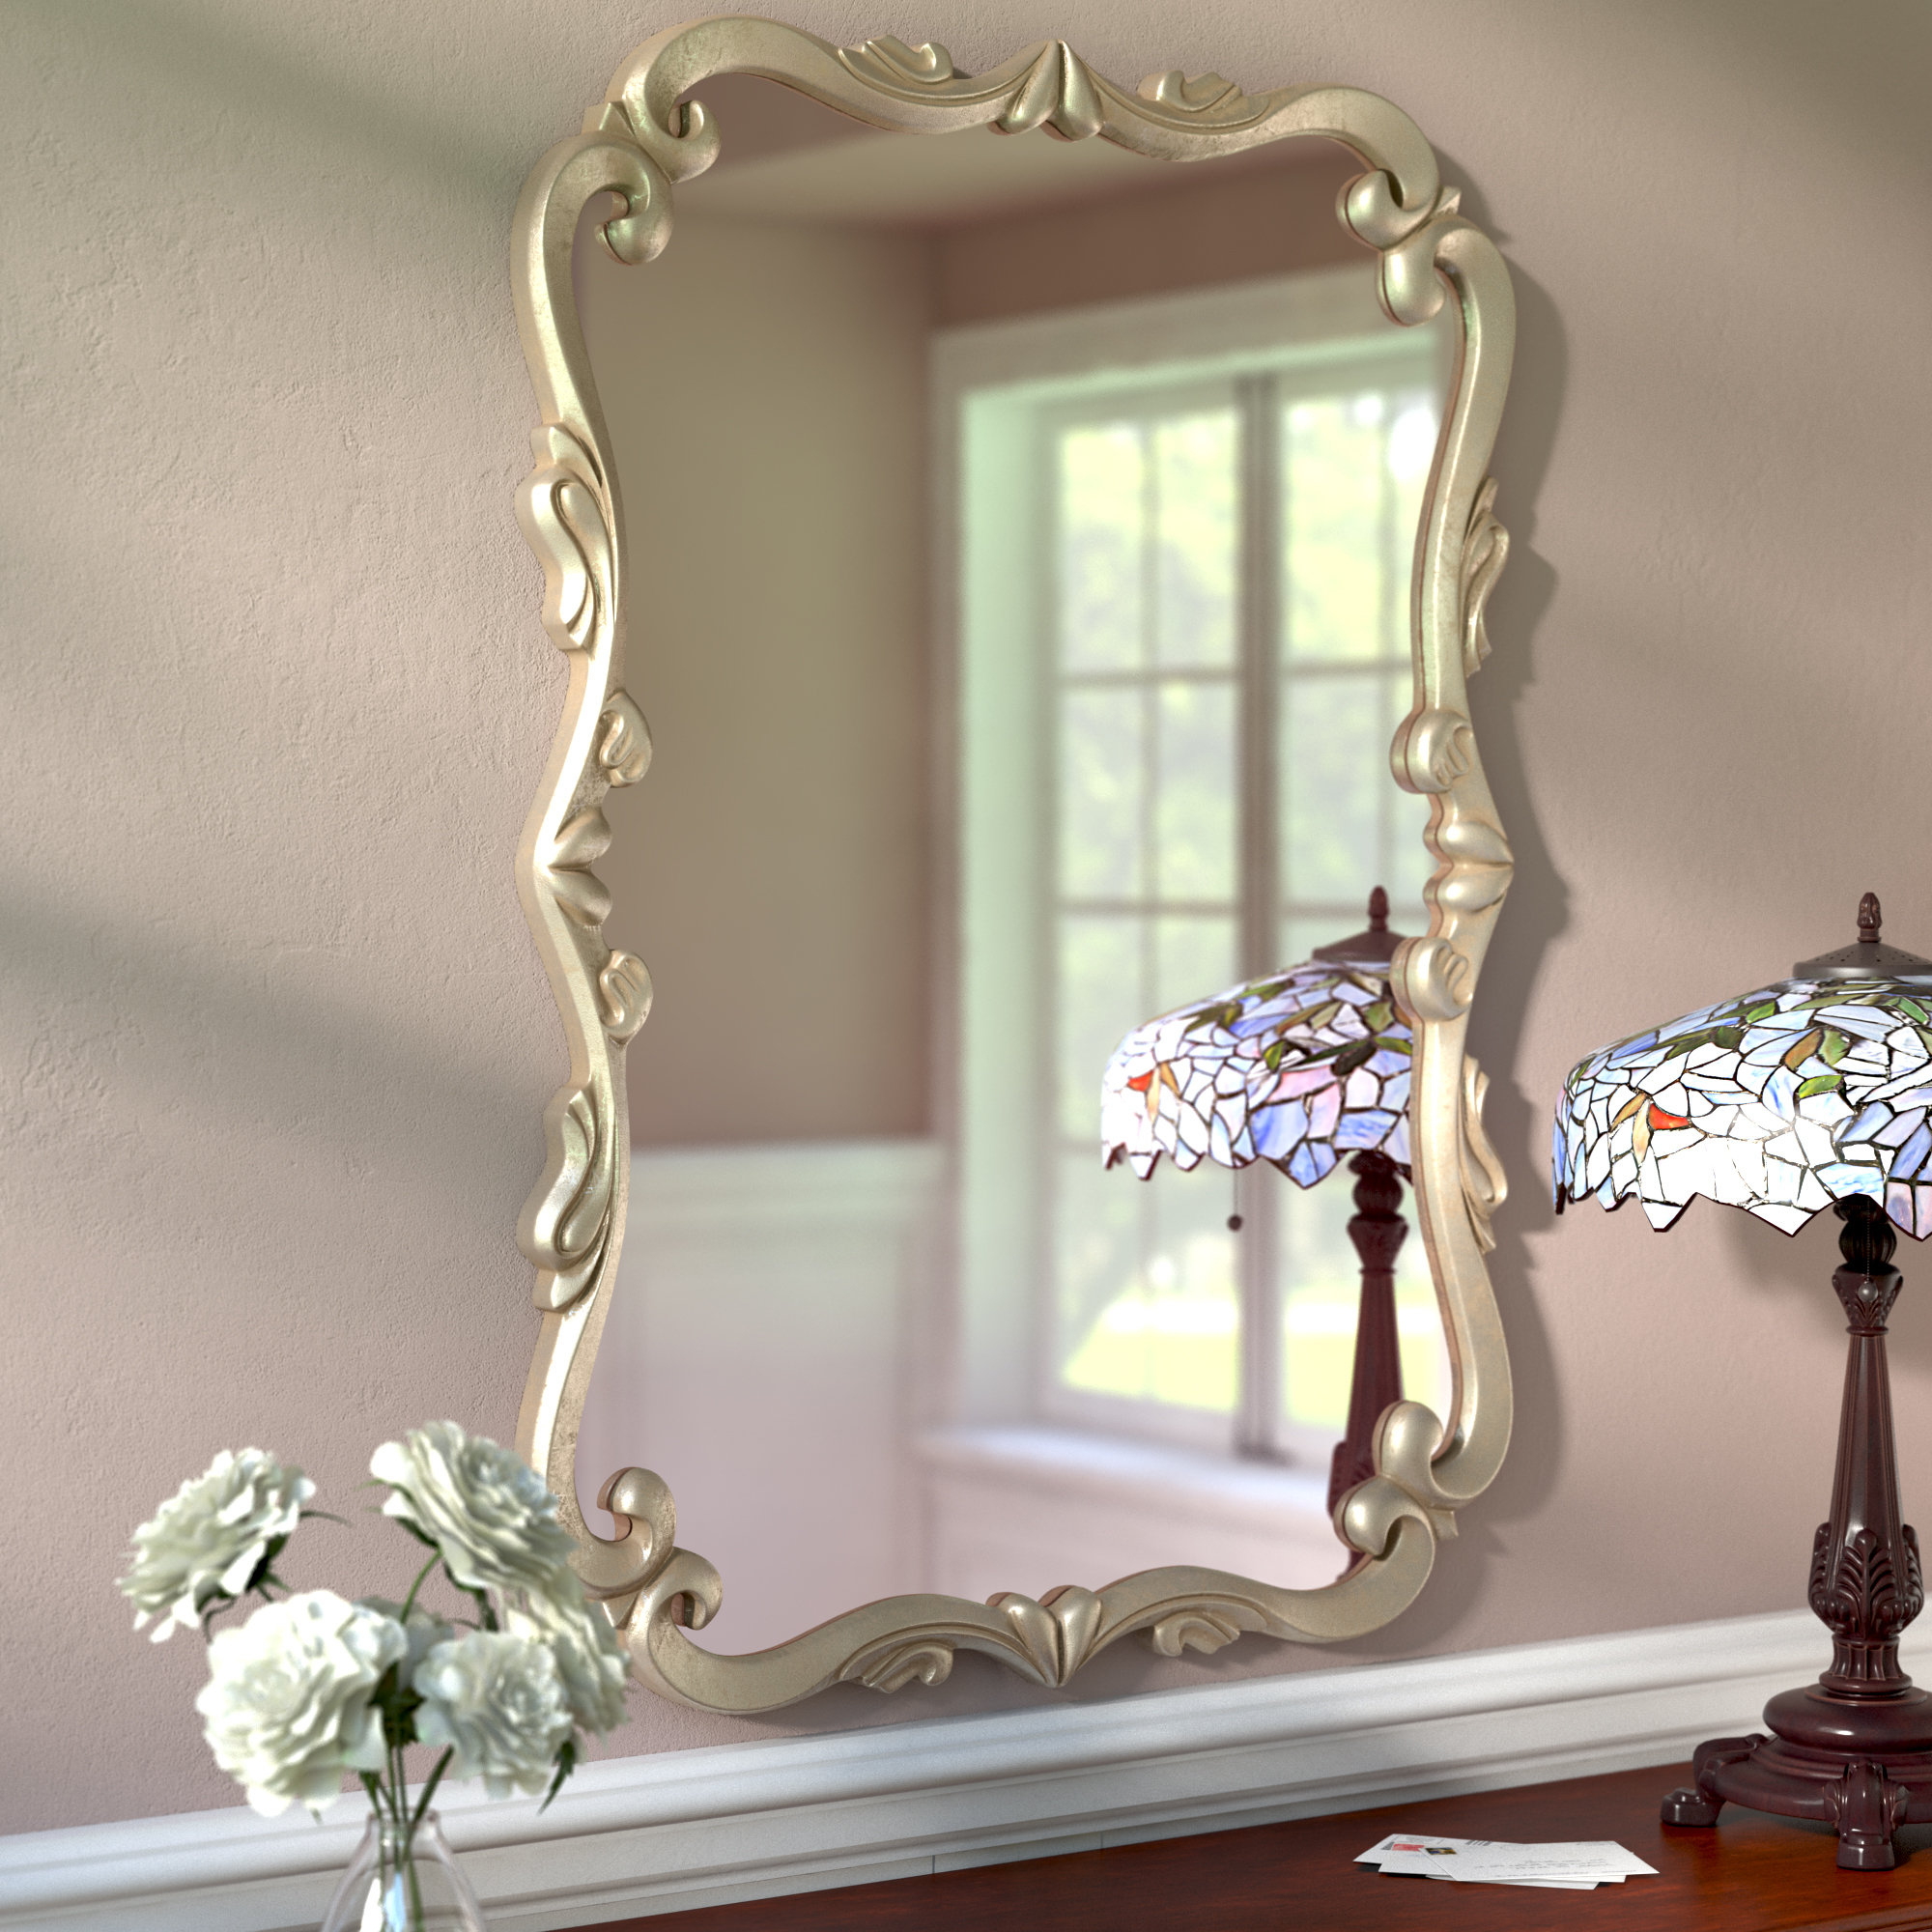 Gingerich Resin Modern & Contemporary Accent Mirrors Throughout Most Recent Traditional Accent Mirror (View 11 of 20)